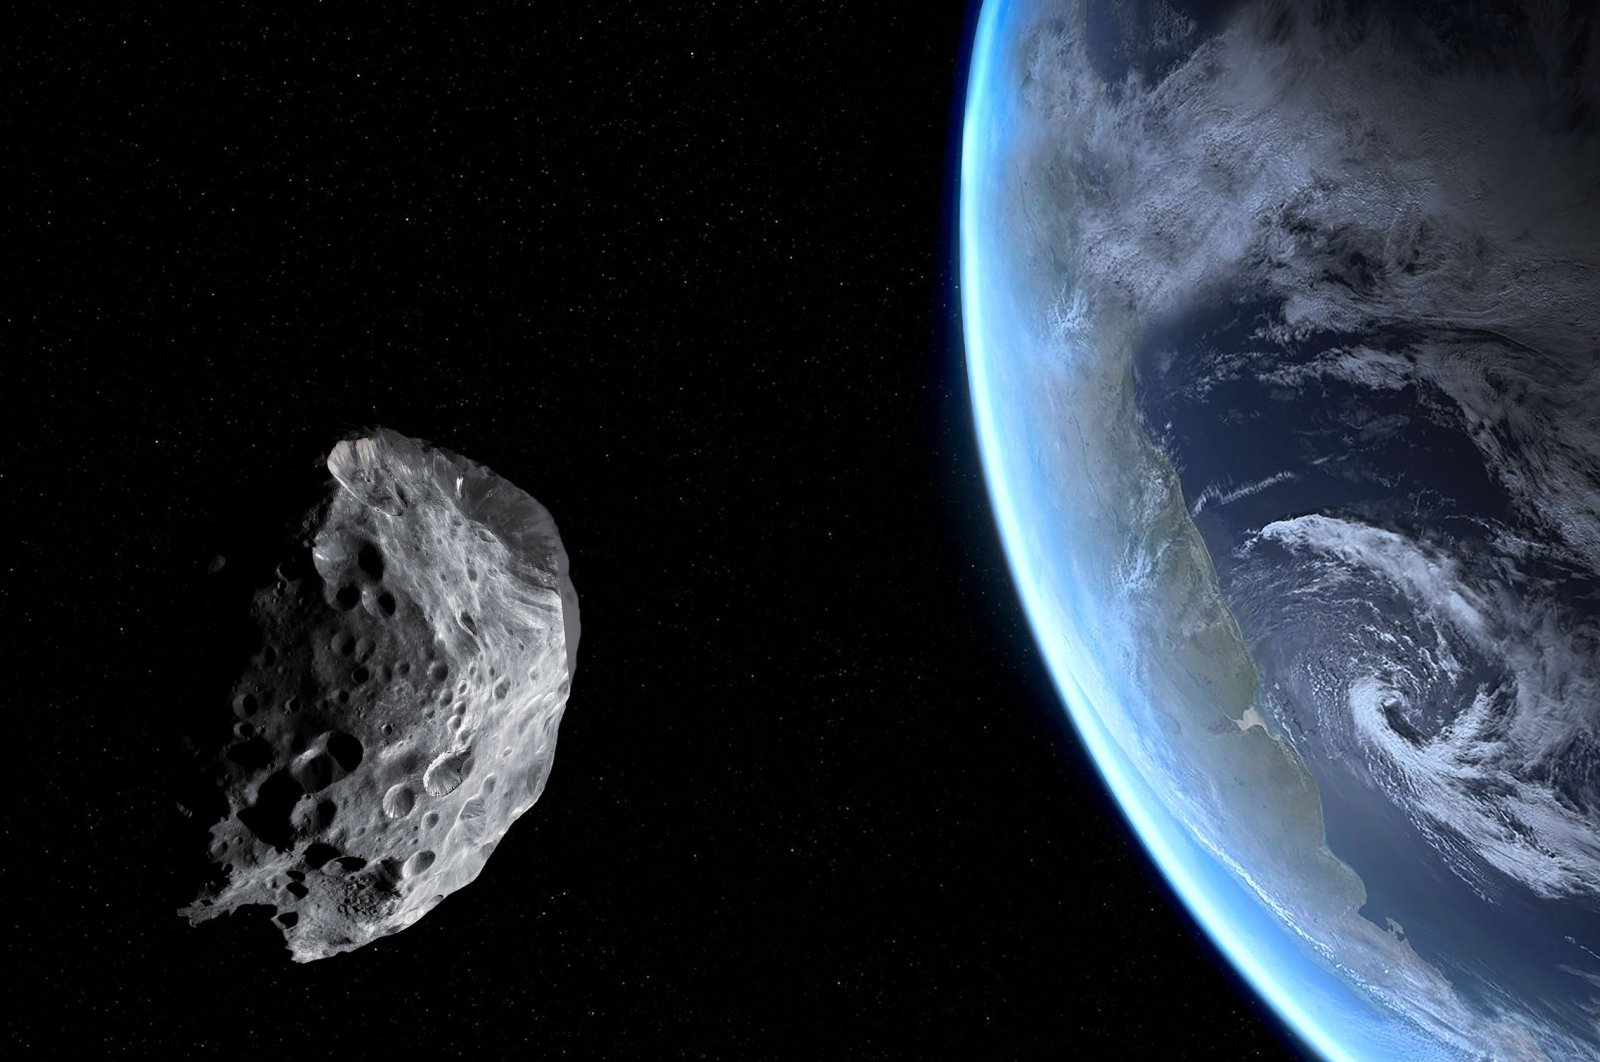 Asteroid 2001 FO32 will approach Earth at a distance of about 2 million kilometers (1.25 million miles), according to NASA. (Shutterstock Photo)